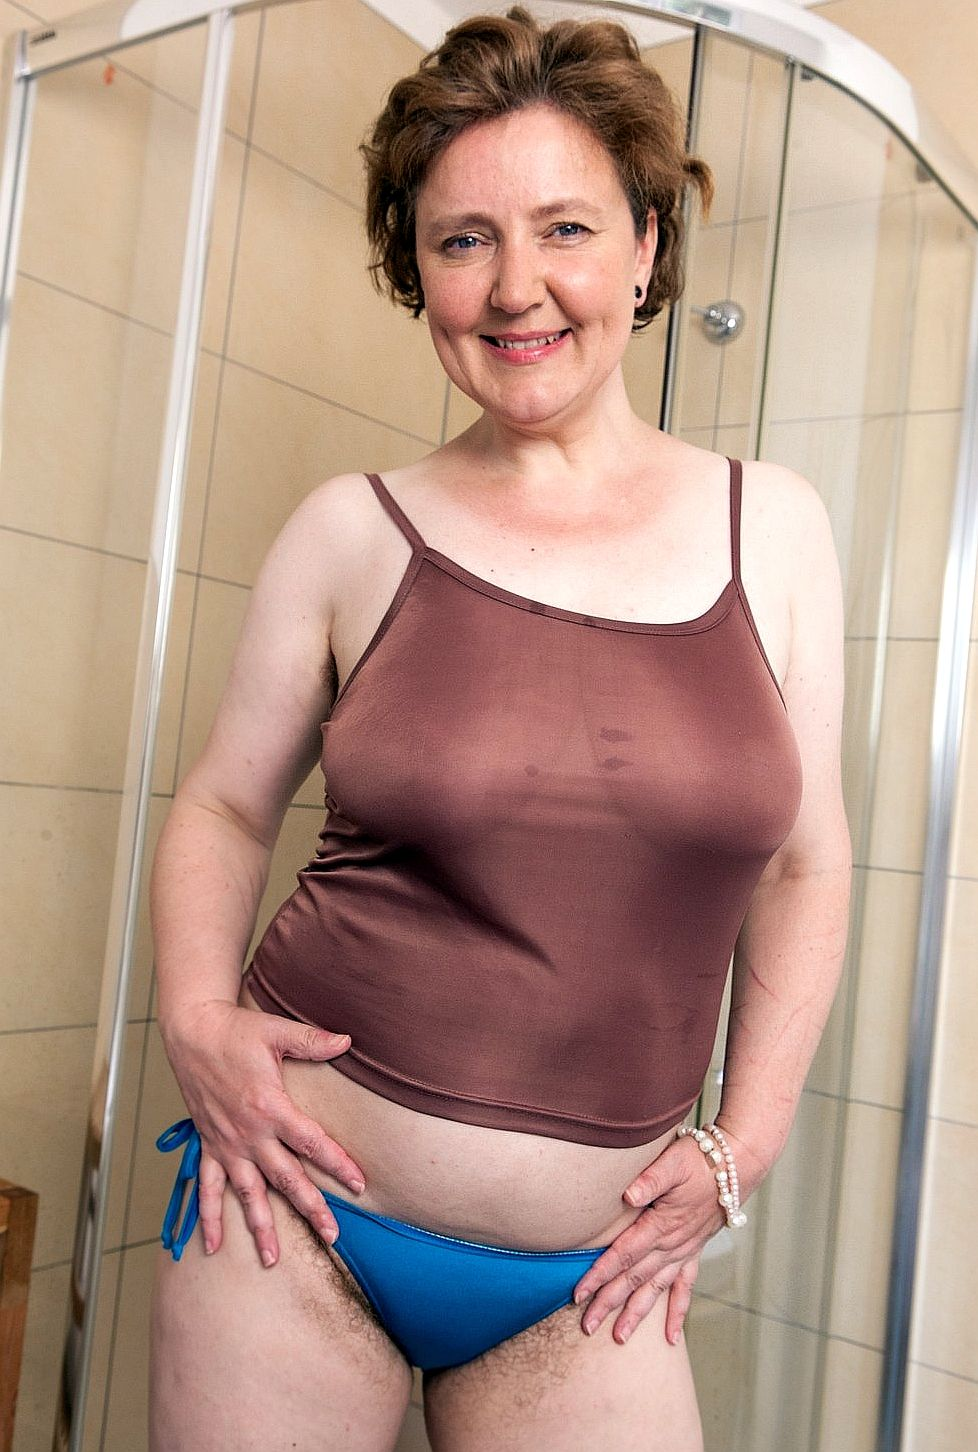 older woman in brown top and blue panties showing pubic hair | older